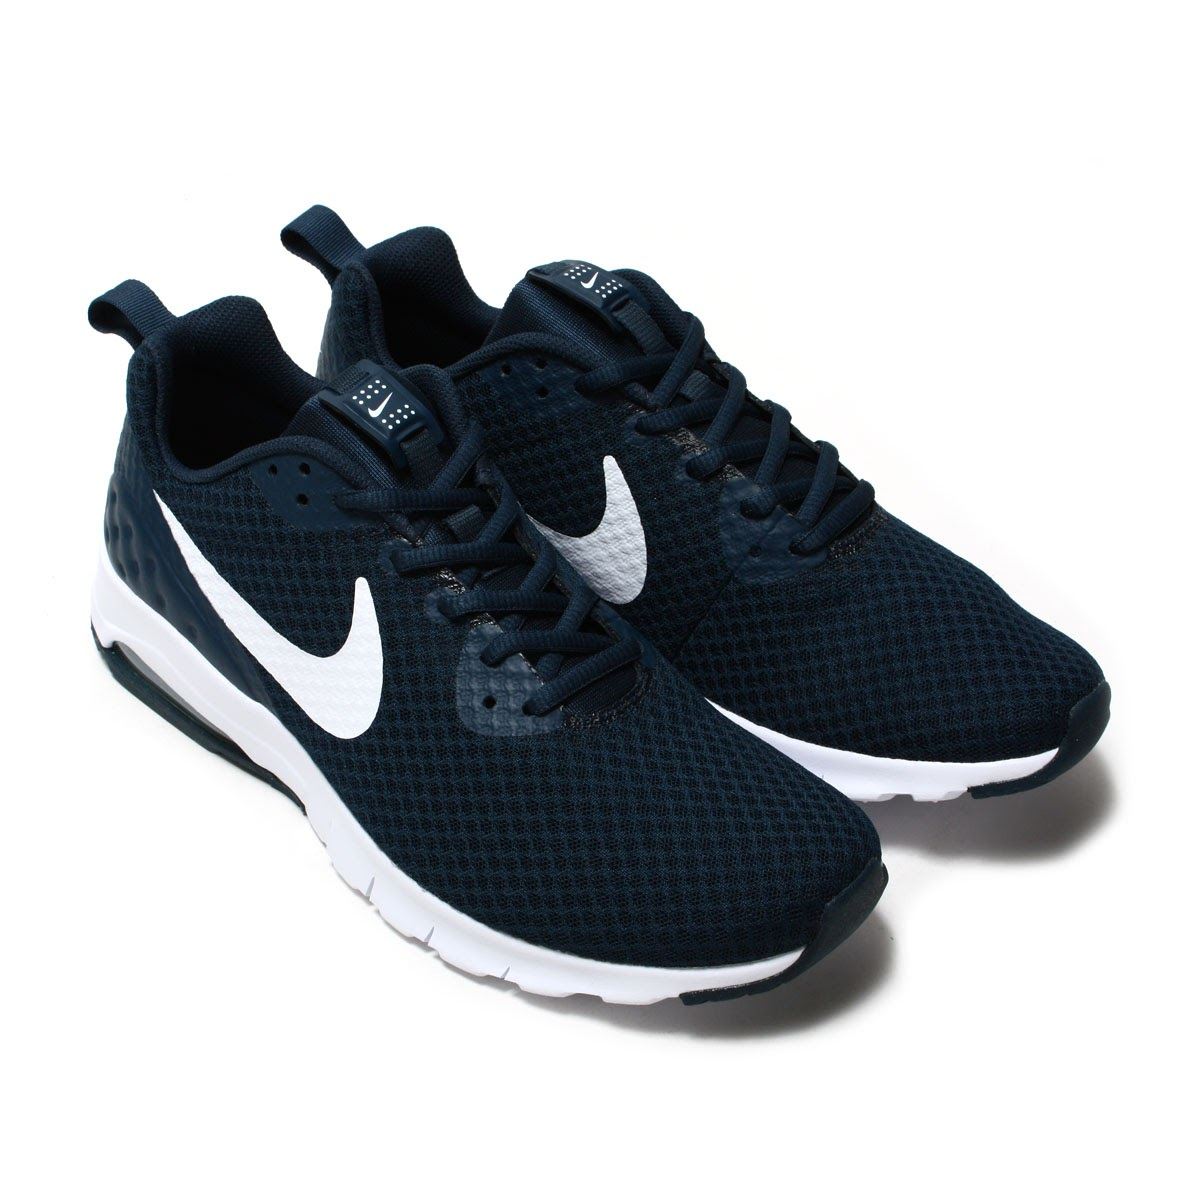 classic fit 2108c e0835 ... czech nike air max motion lw kie ney amax motion lw armory navy white  17fa i